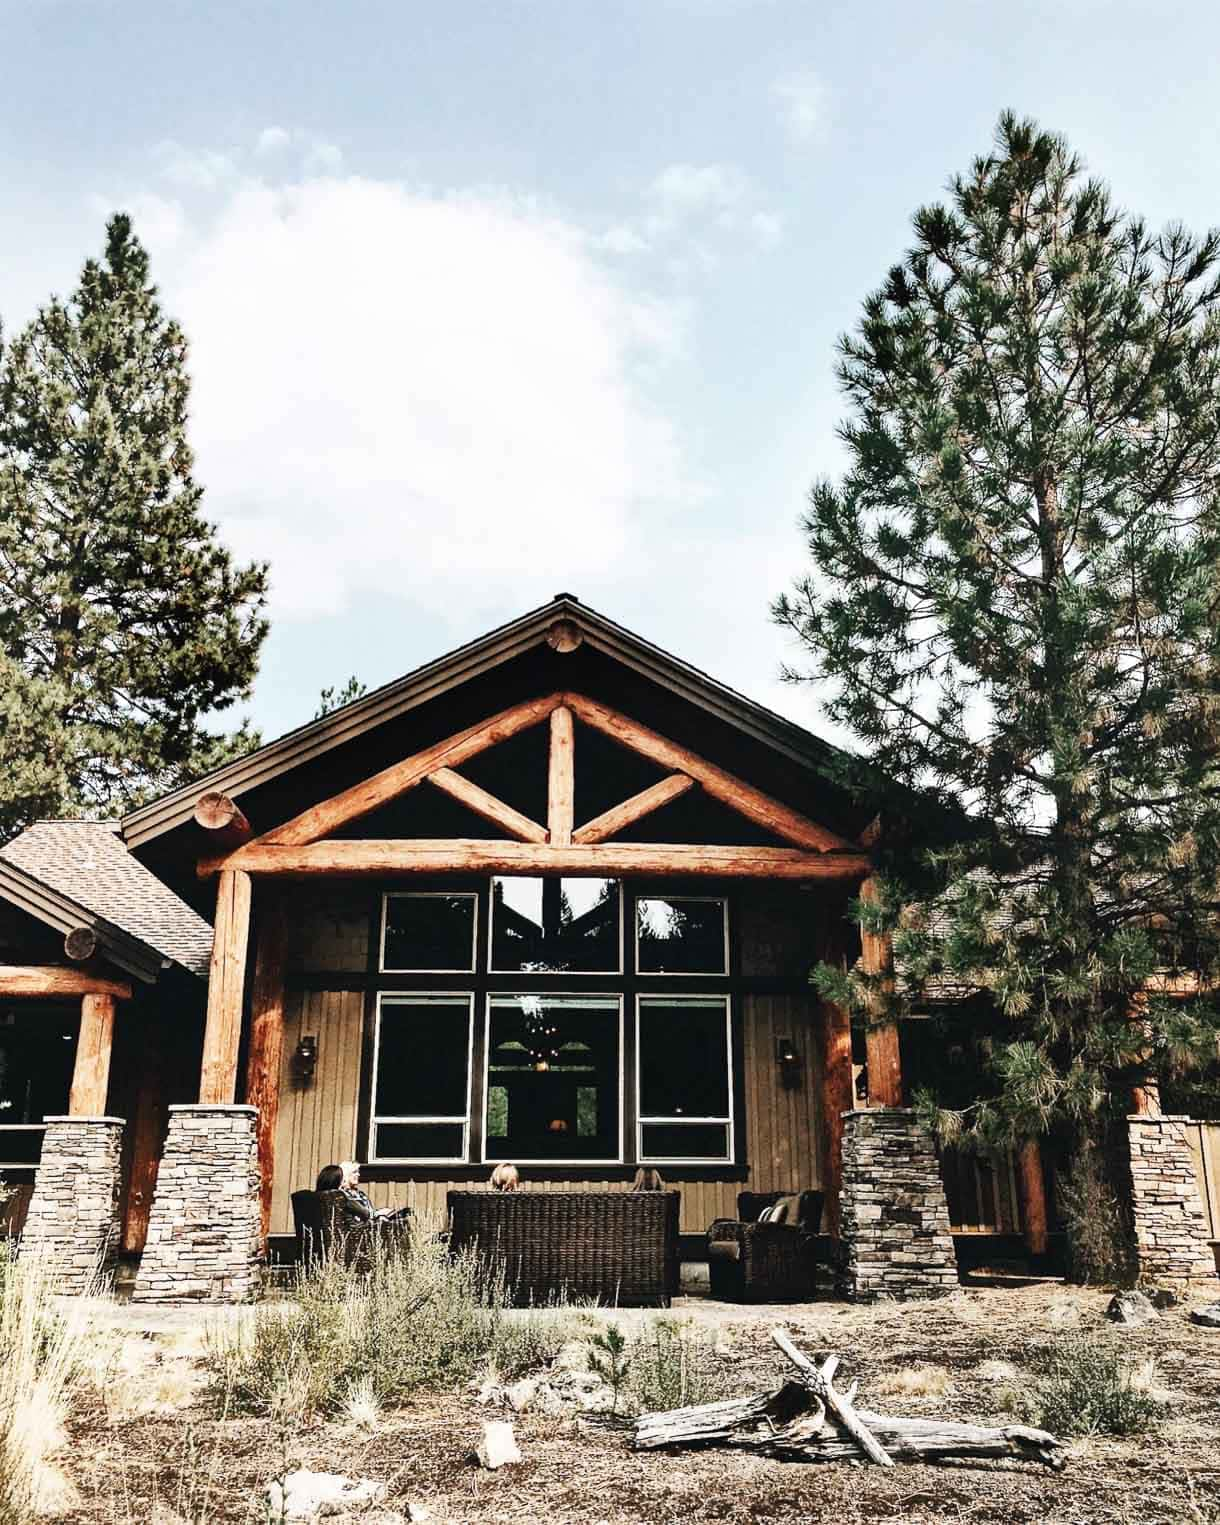 home at Caldera Springs, Sunriver Resort // cozy house with tall pines